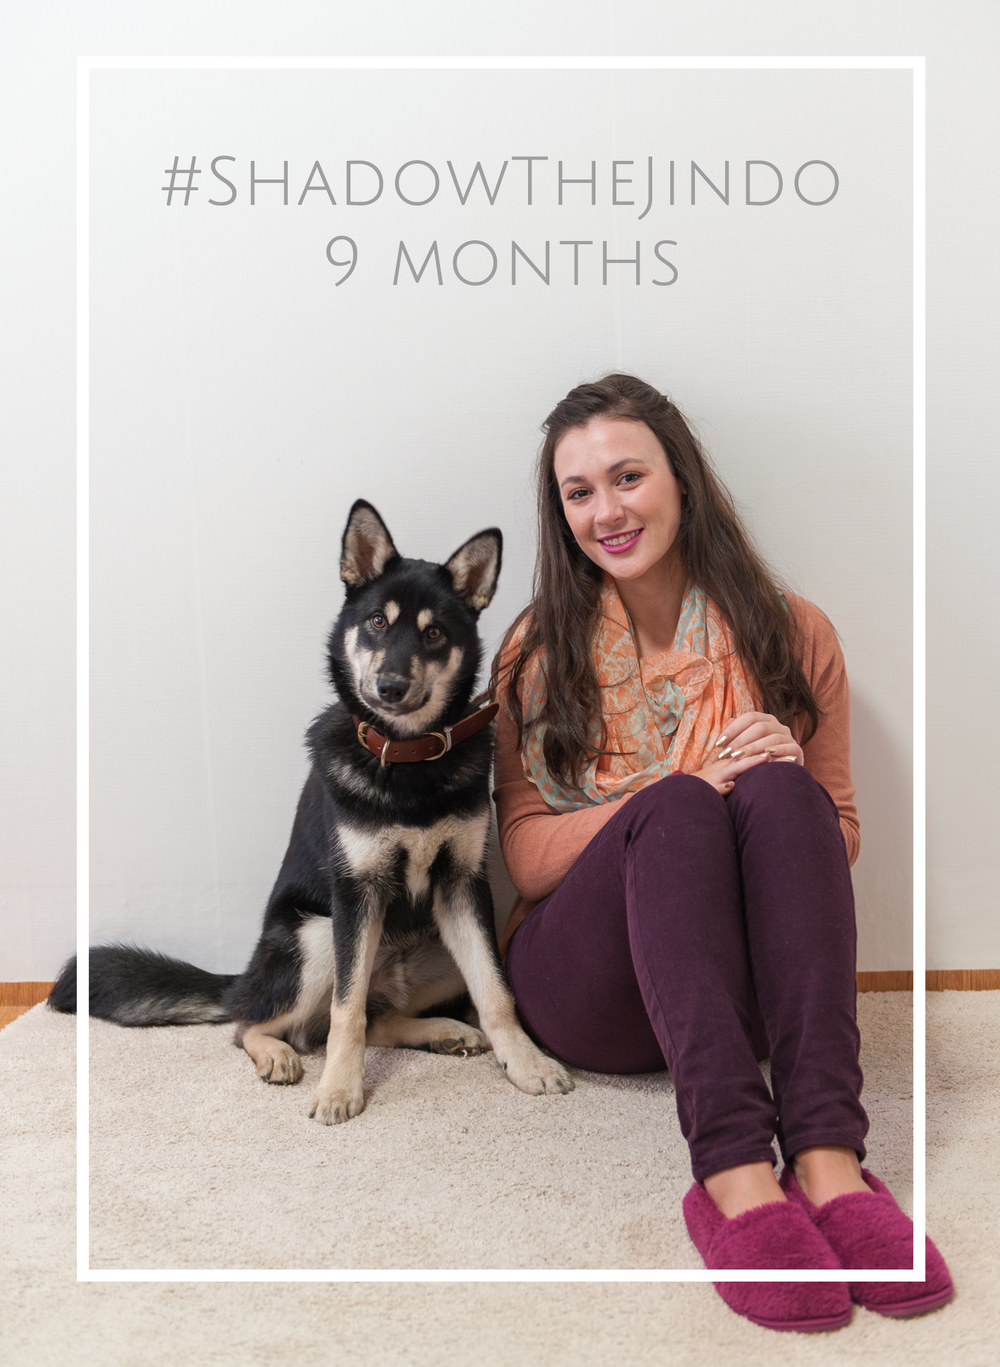 ShadowTheJindo9Months.png